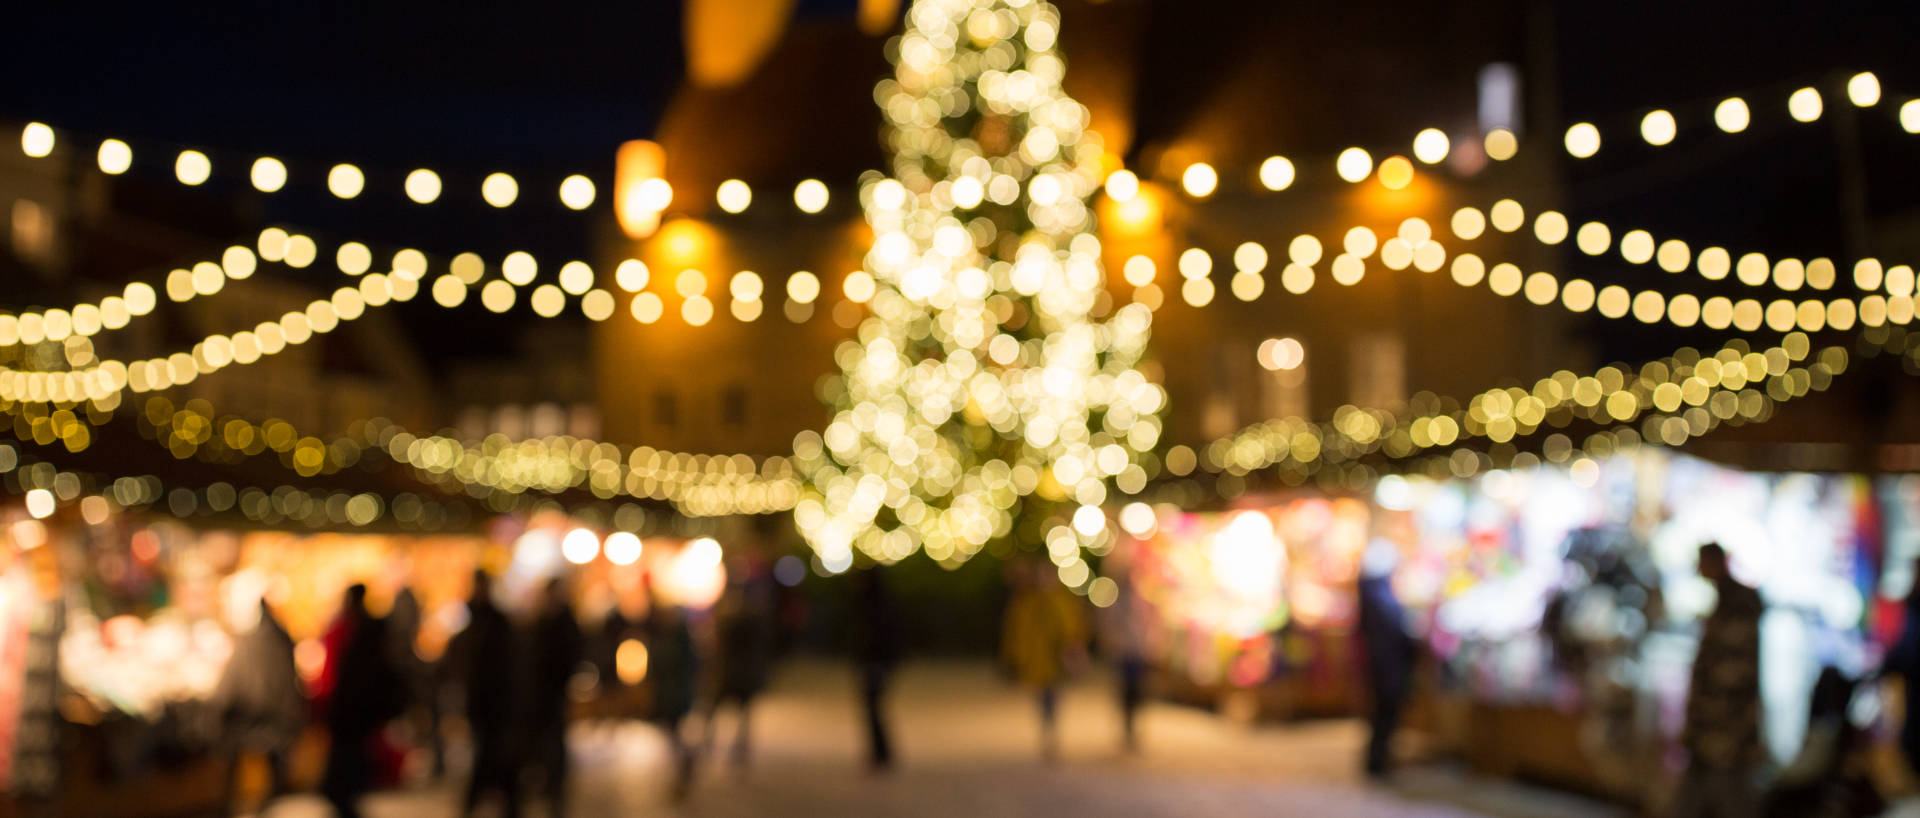 Christmas markets with blurred fairly lights